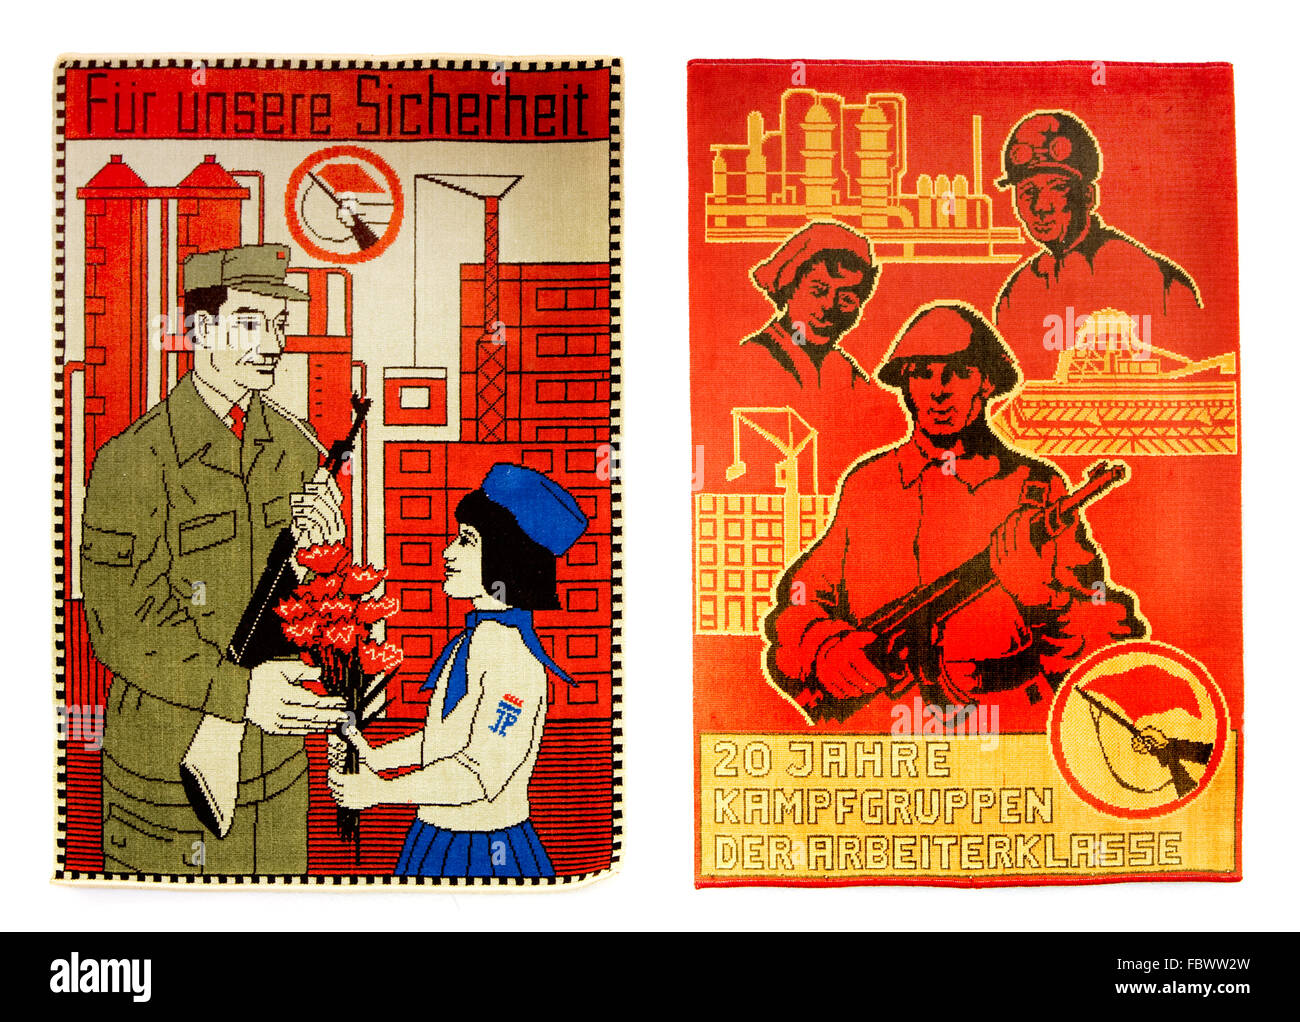 tapestry with gdr army motives - Stock Image